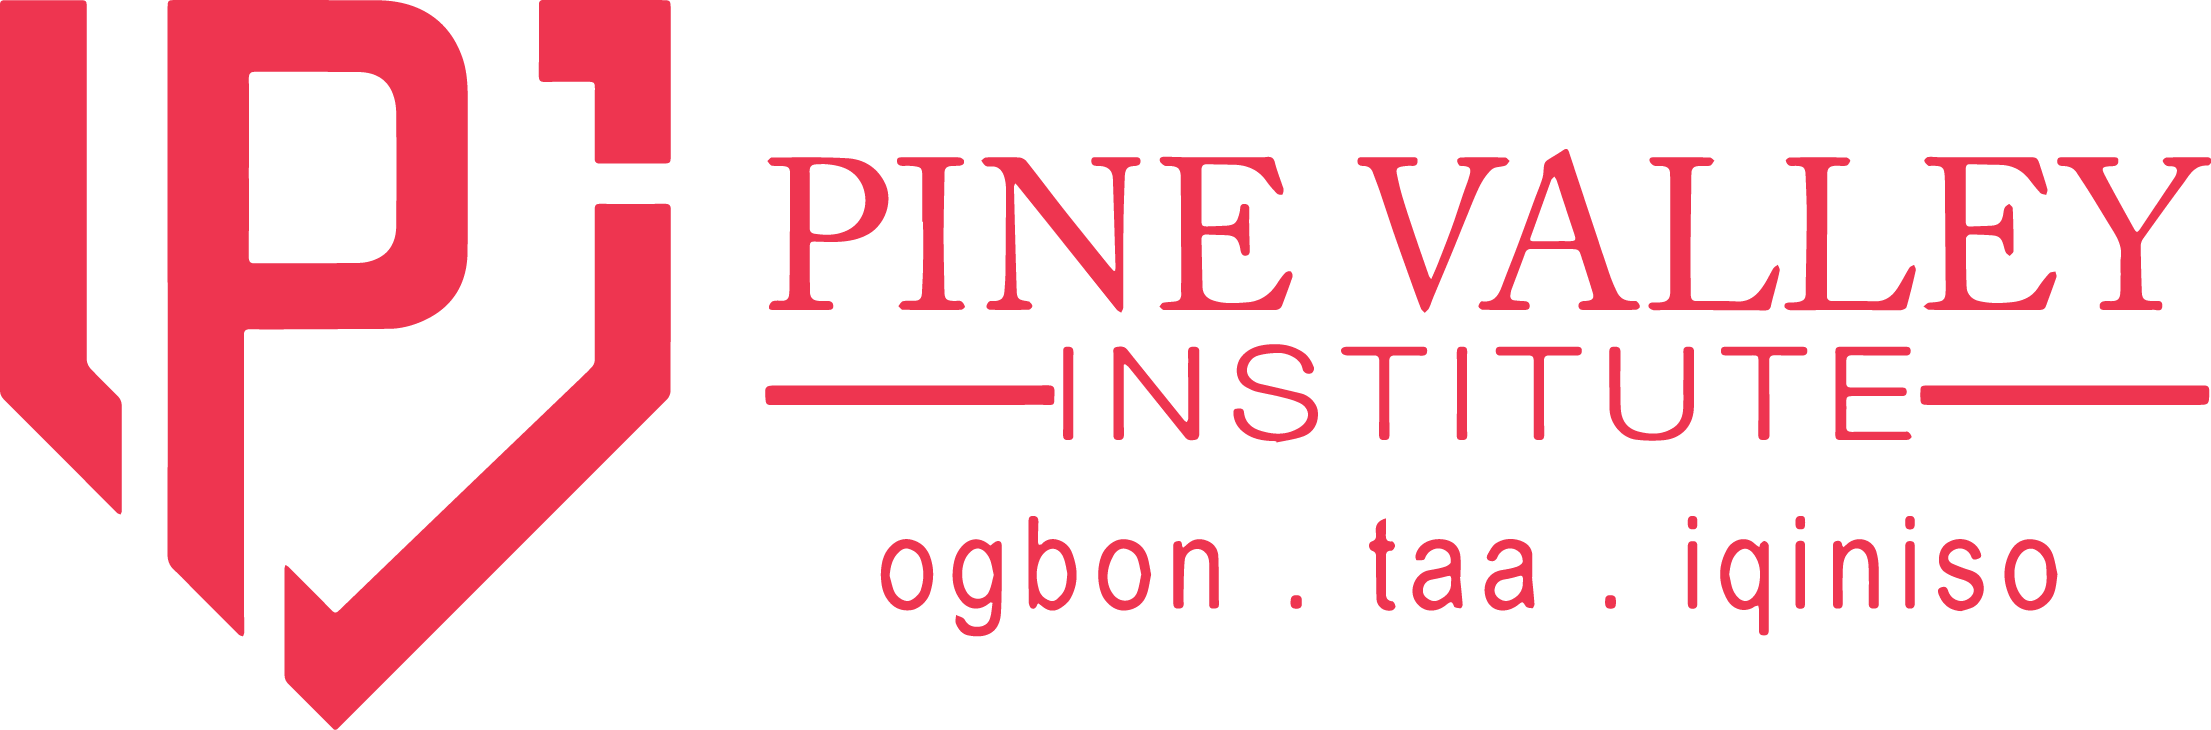 Pine Valley Institute